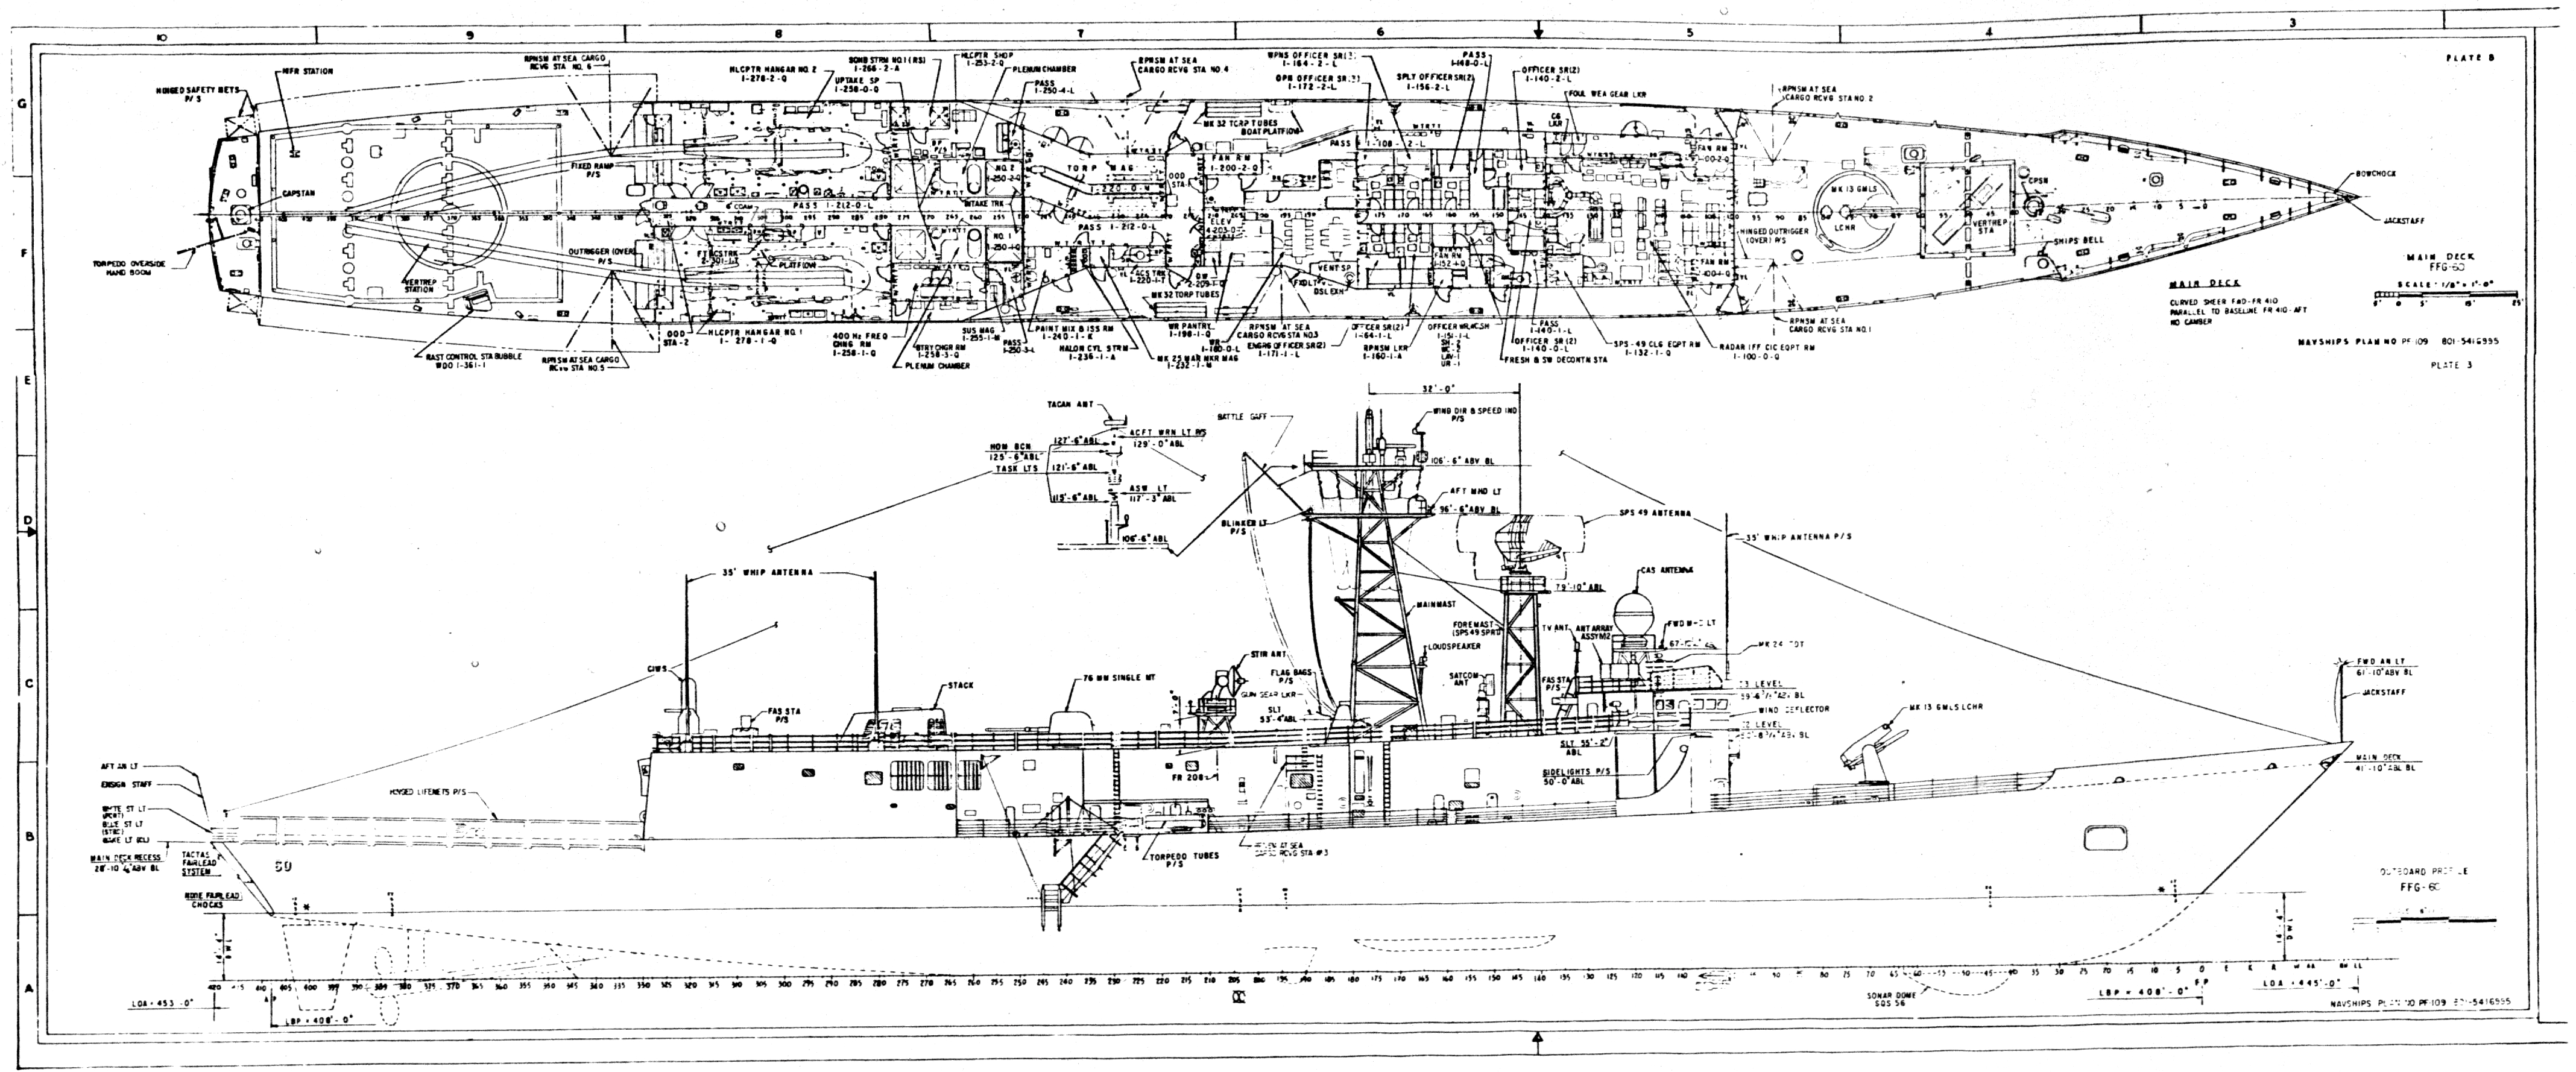 rc boat schematics with File Oliver Hazard Perry Class Frigate  Long Hull  Outboard Profile on Index besides Sink The Bismarck Summary further 29frc Removed Battery Mercruiser 3 0 Earlier Today furthermore Gmc Dukw 353  hibious additionally File Oliver Hazard Perry Class frigate  long hull  outboard profile.